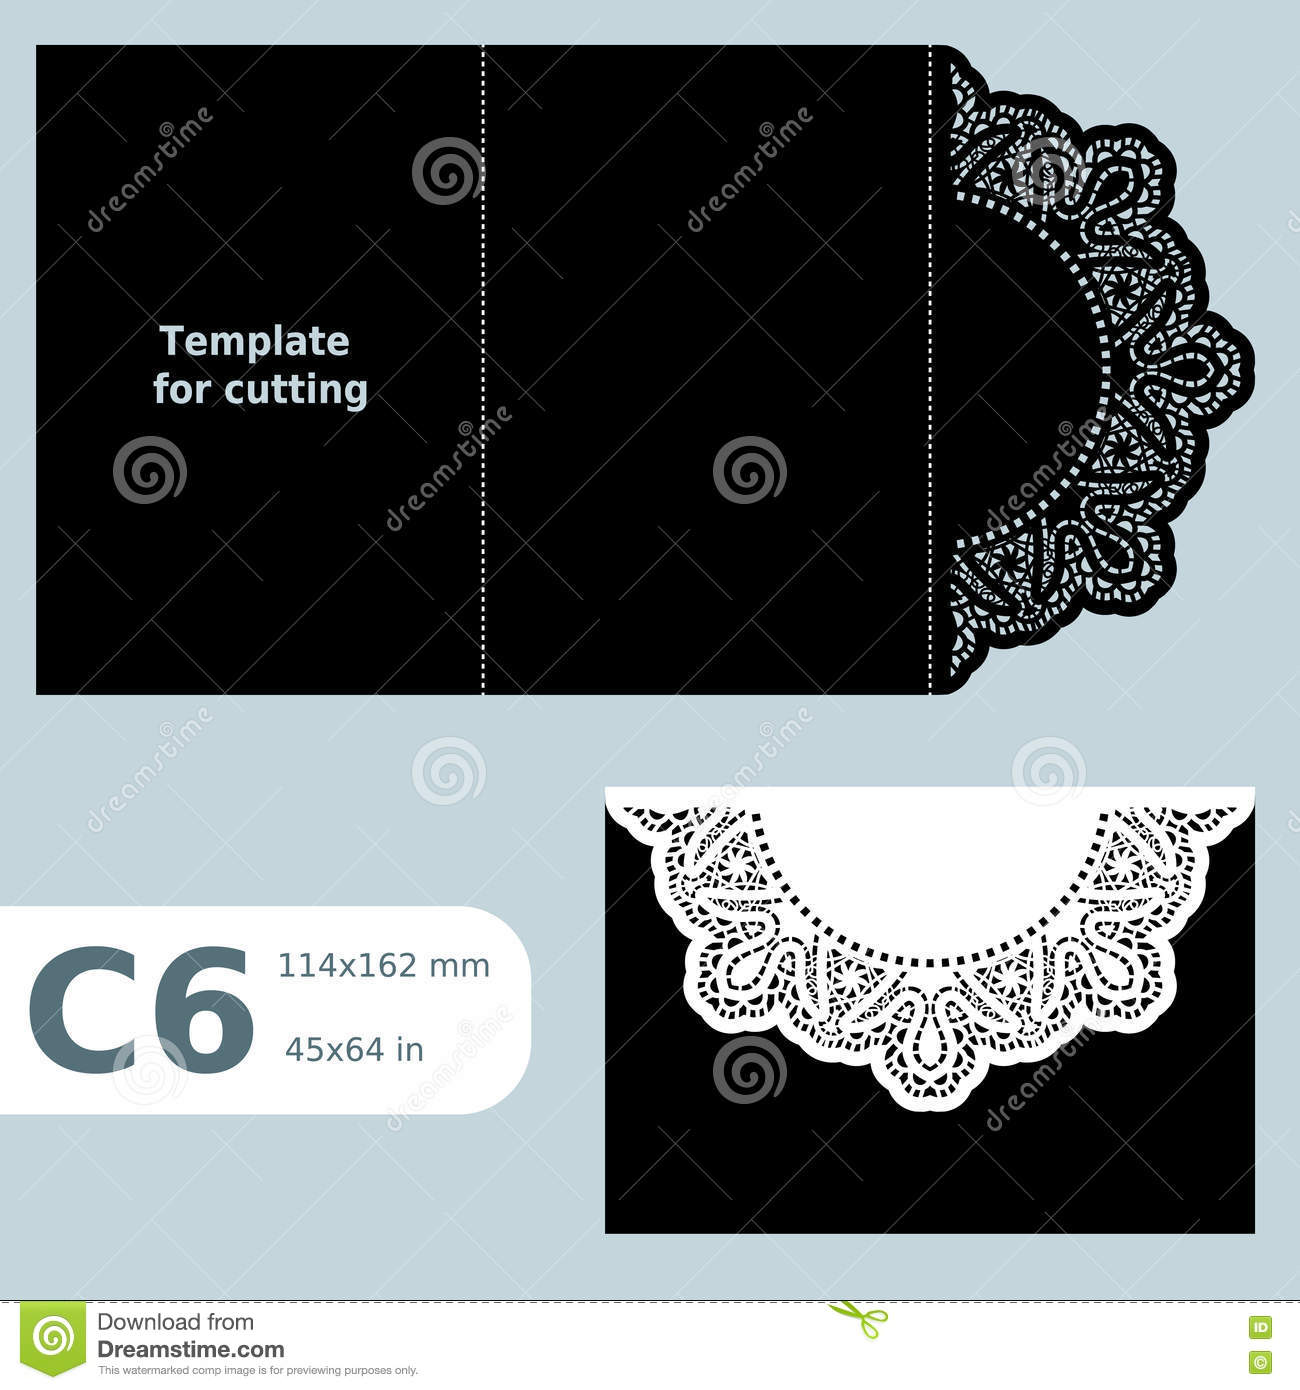 C6 paper openwork greeting card template for cutting lace c6 paper openwork greeting card template for cutting lace invitation ard with fold lines object isolated background vector m4hsunfo